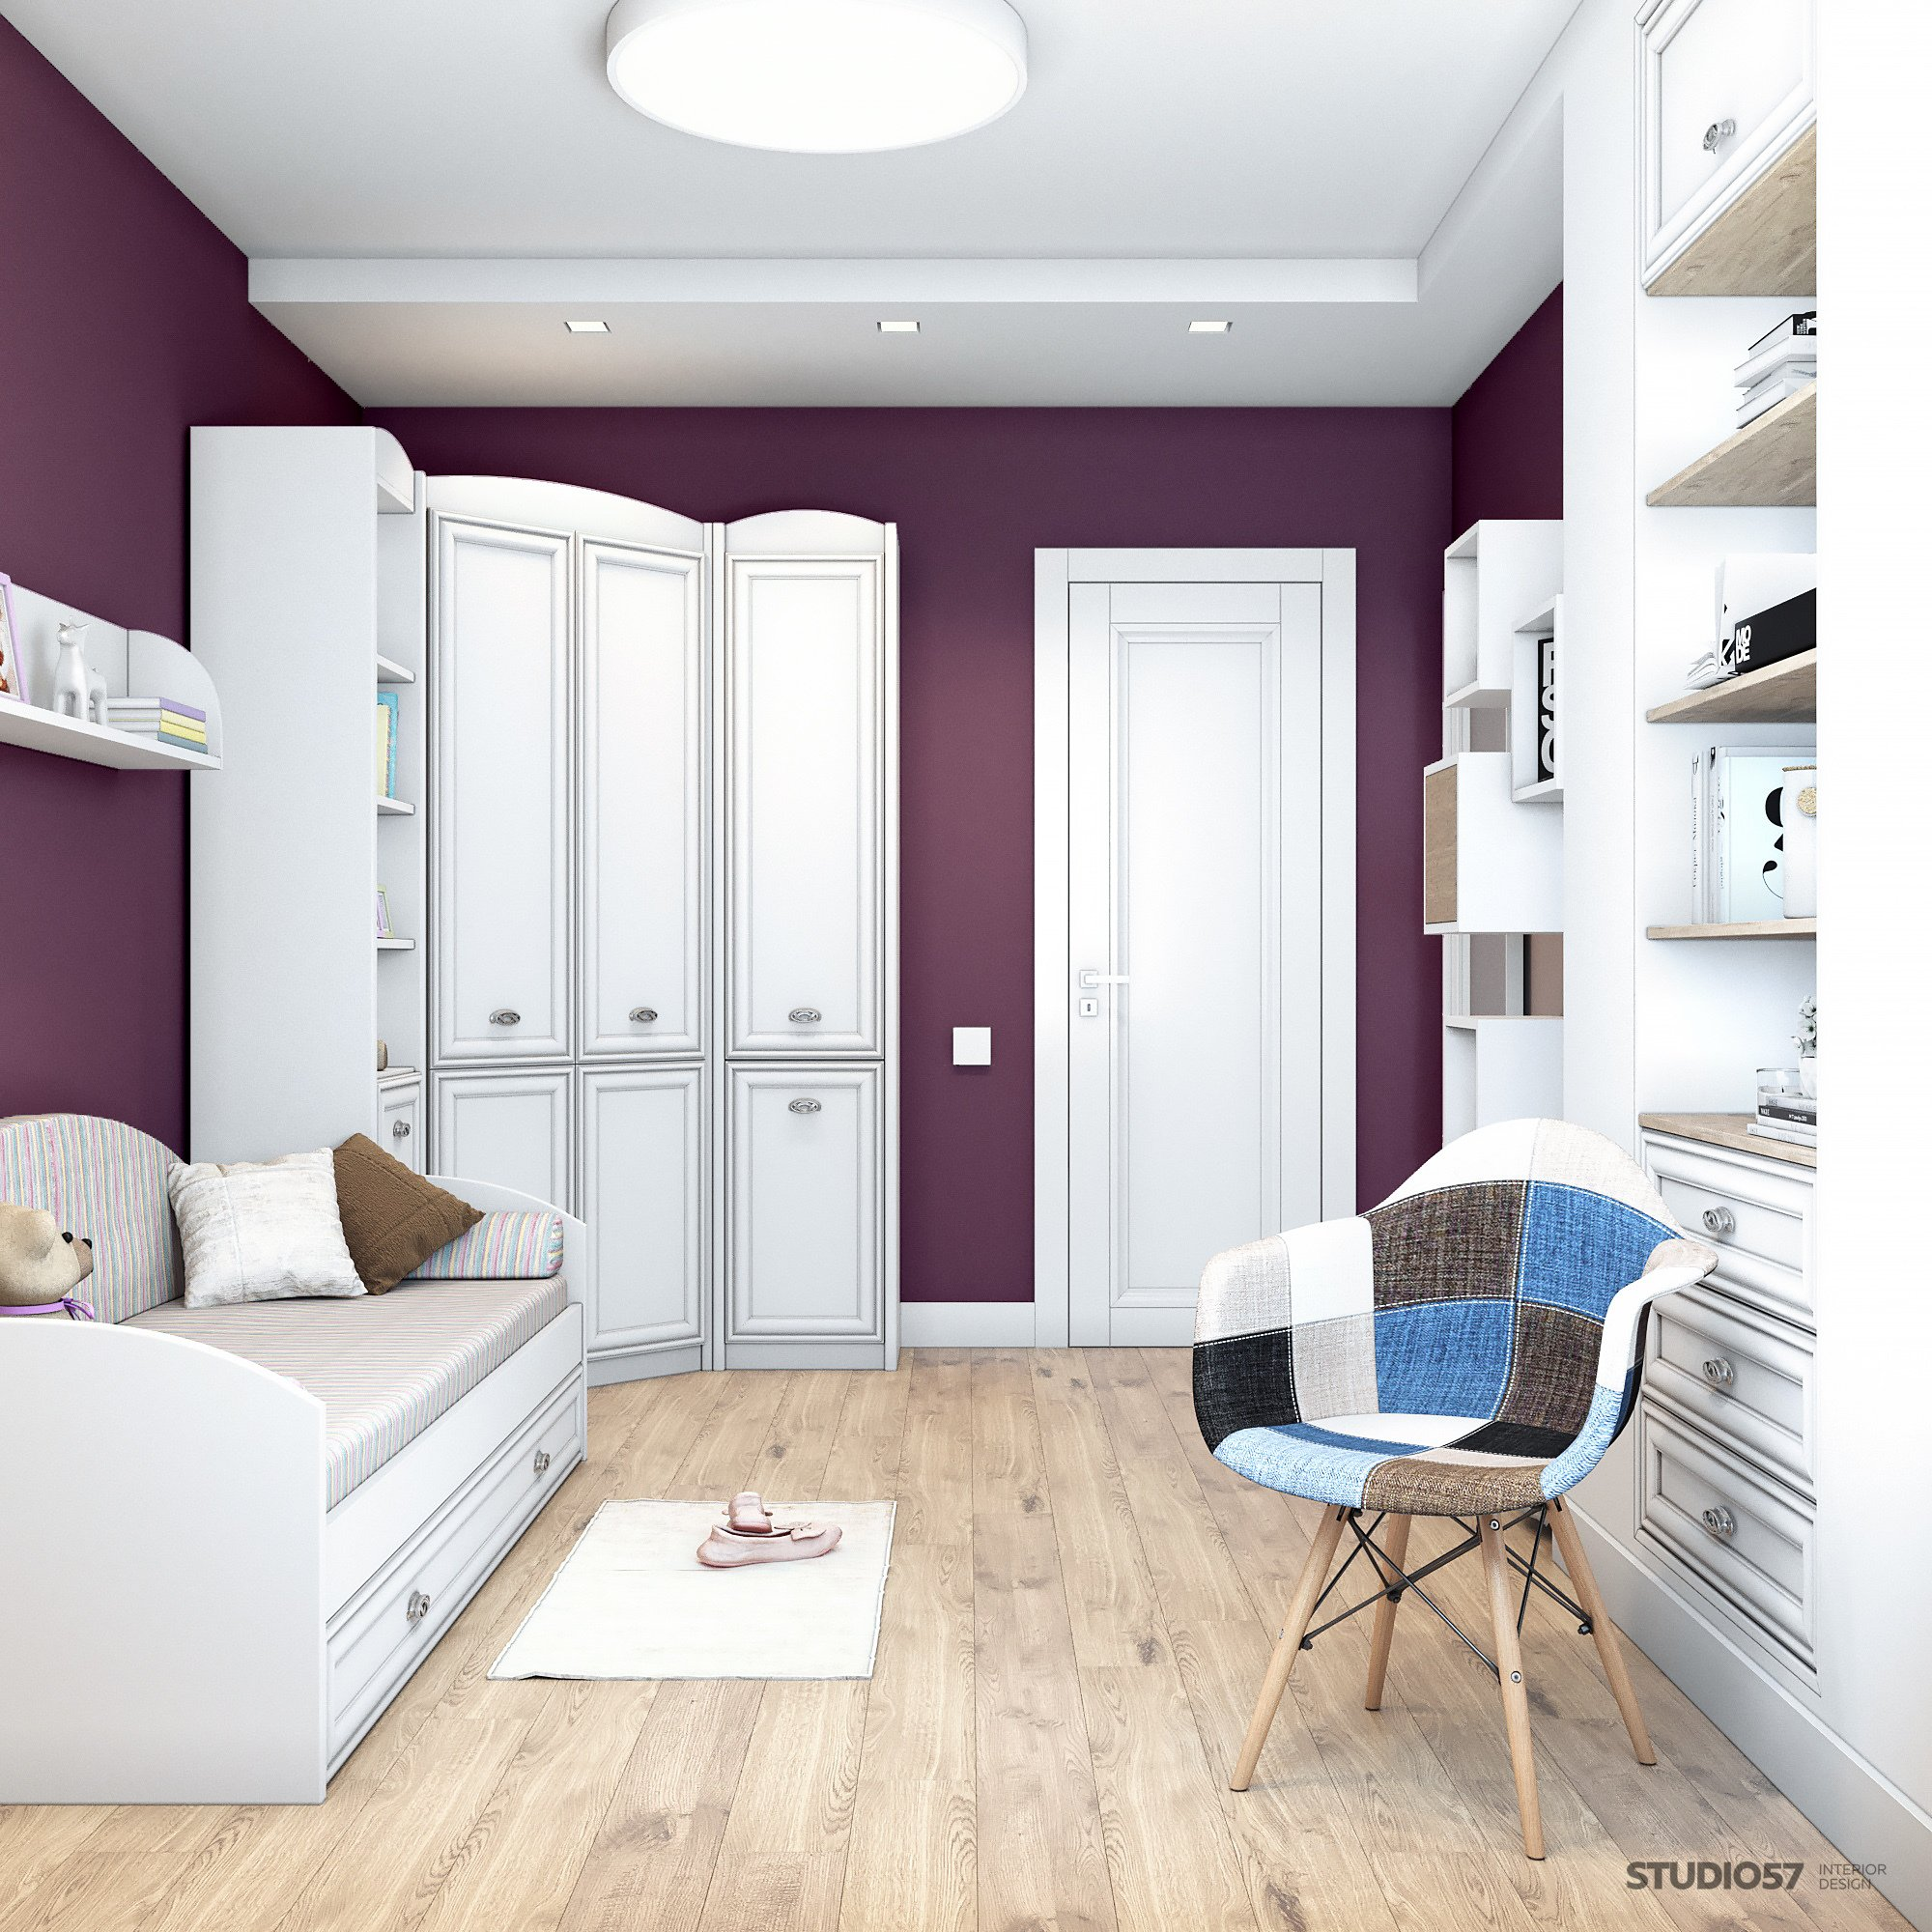 Children's room in the Style of Contemporary Photo